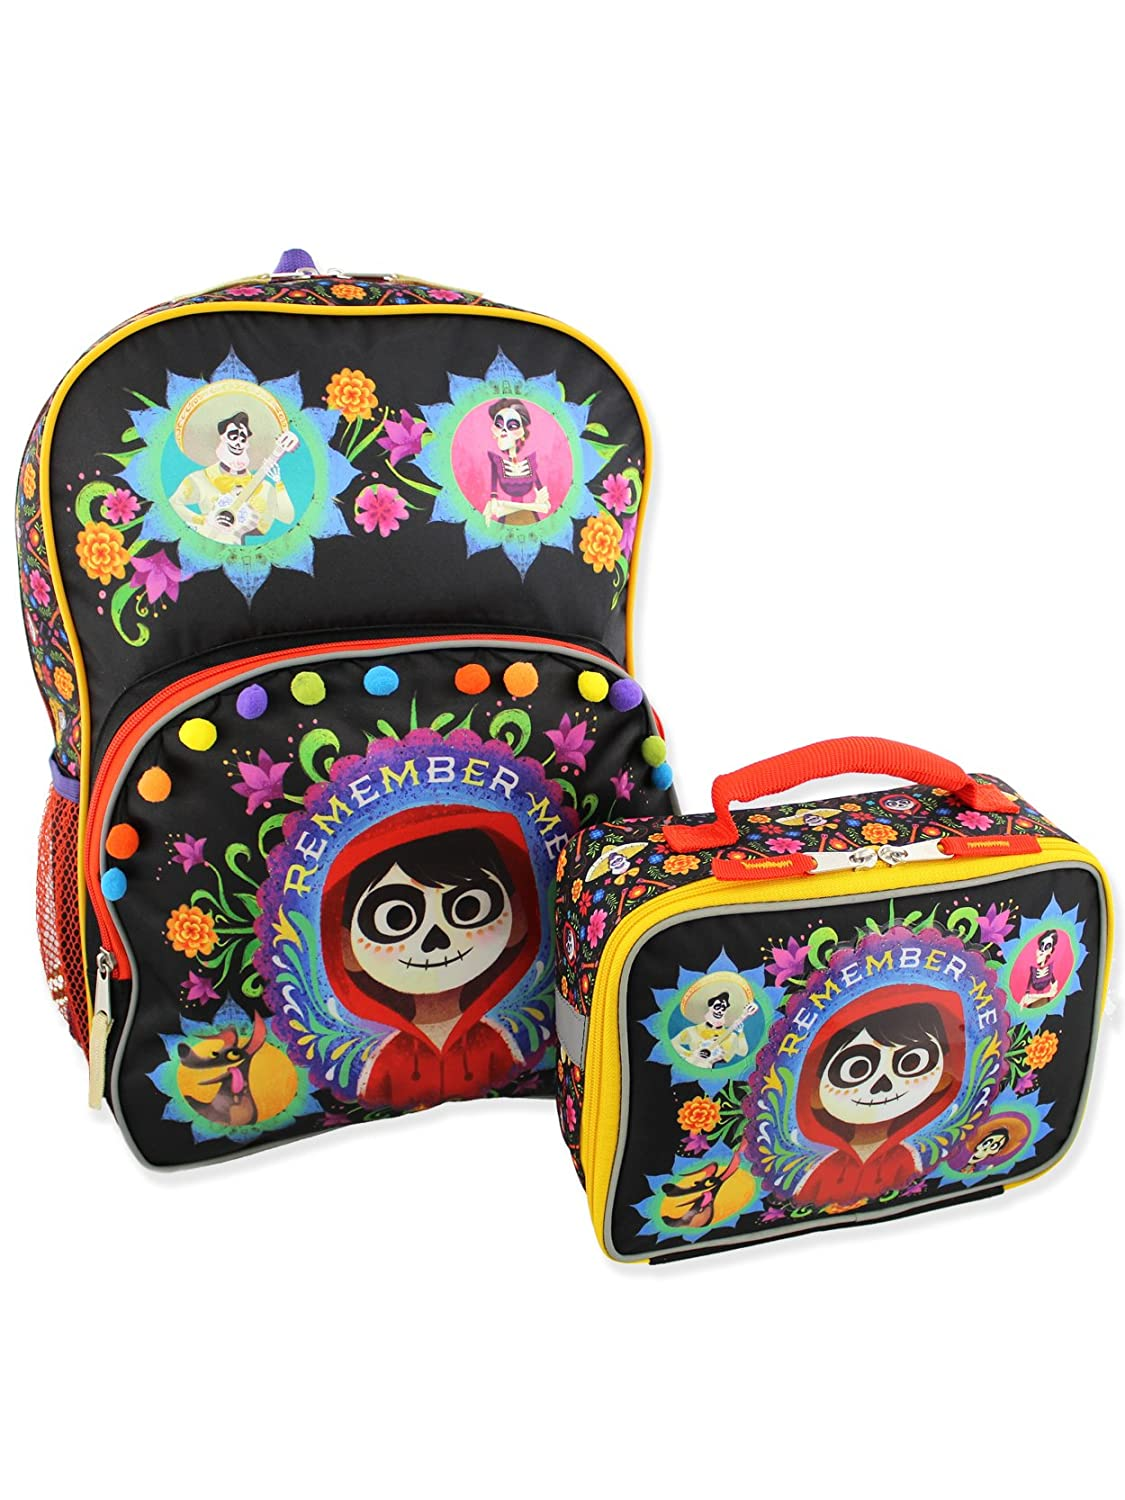 Disney Coco Kids Backpack and Lunch Box School Set One Size Black Multi